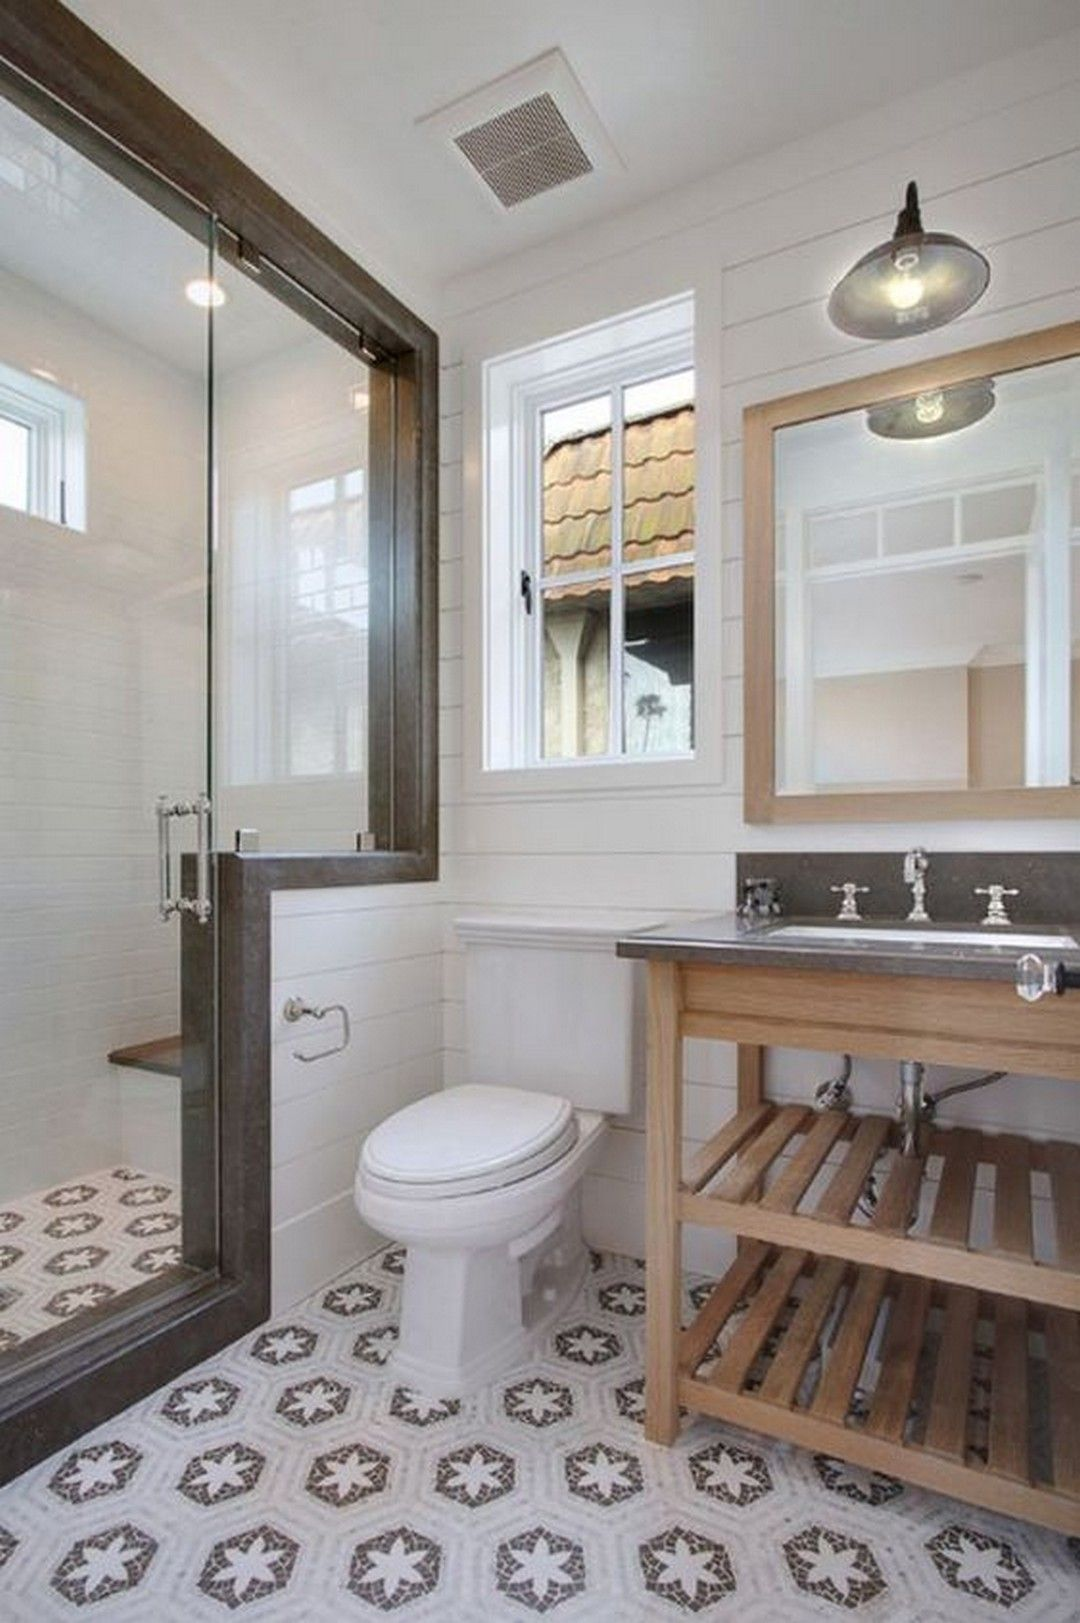 9 Awesome Coastal Farmhouse Bathroom Designs To Manage In Your House Goodnewsarchitecture California Beach House Small Bathroom Remodel House Bathroom